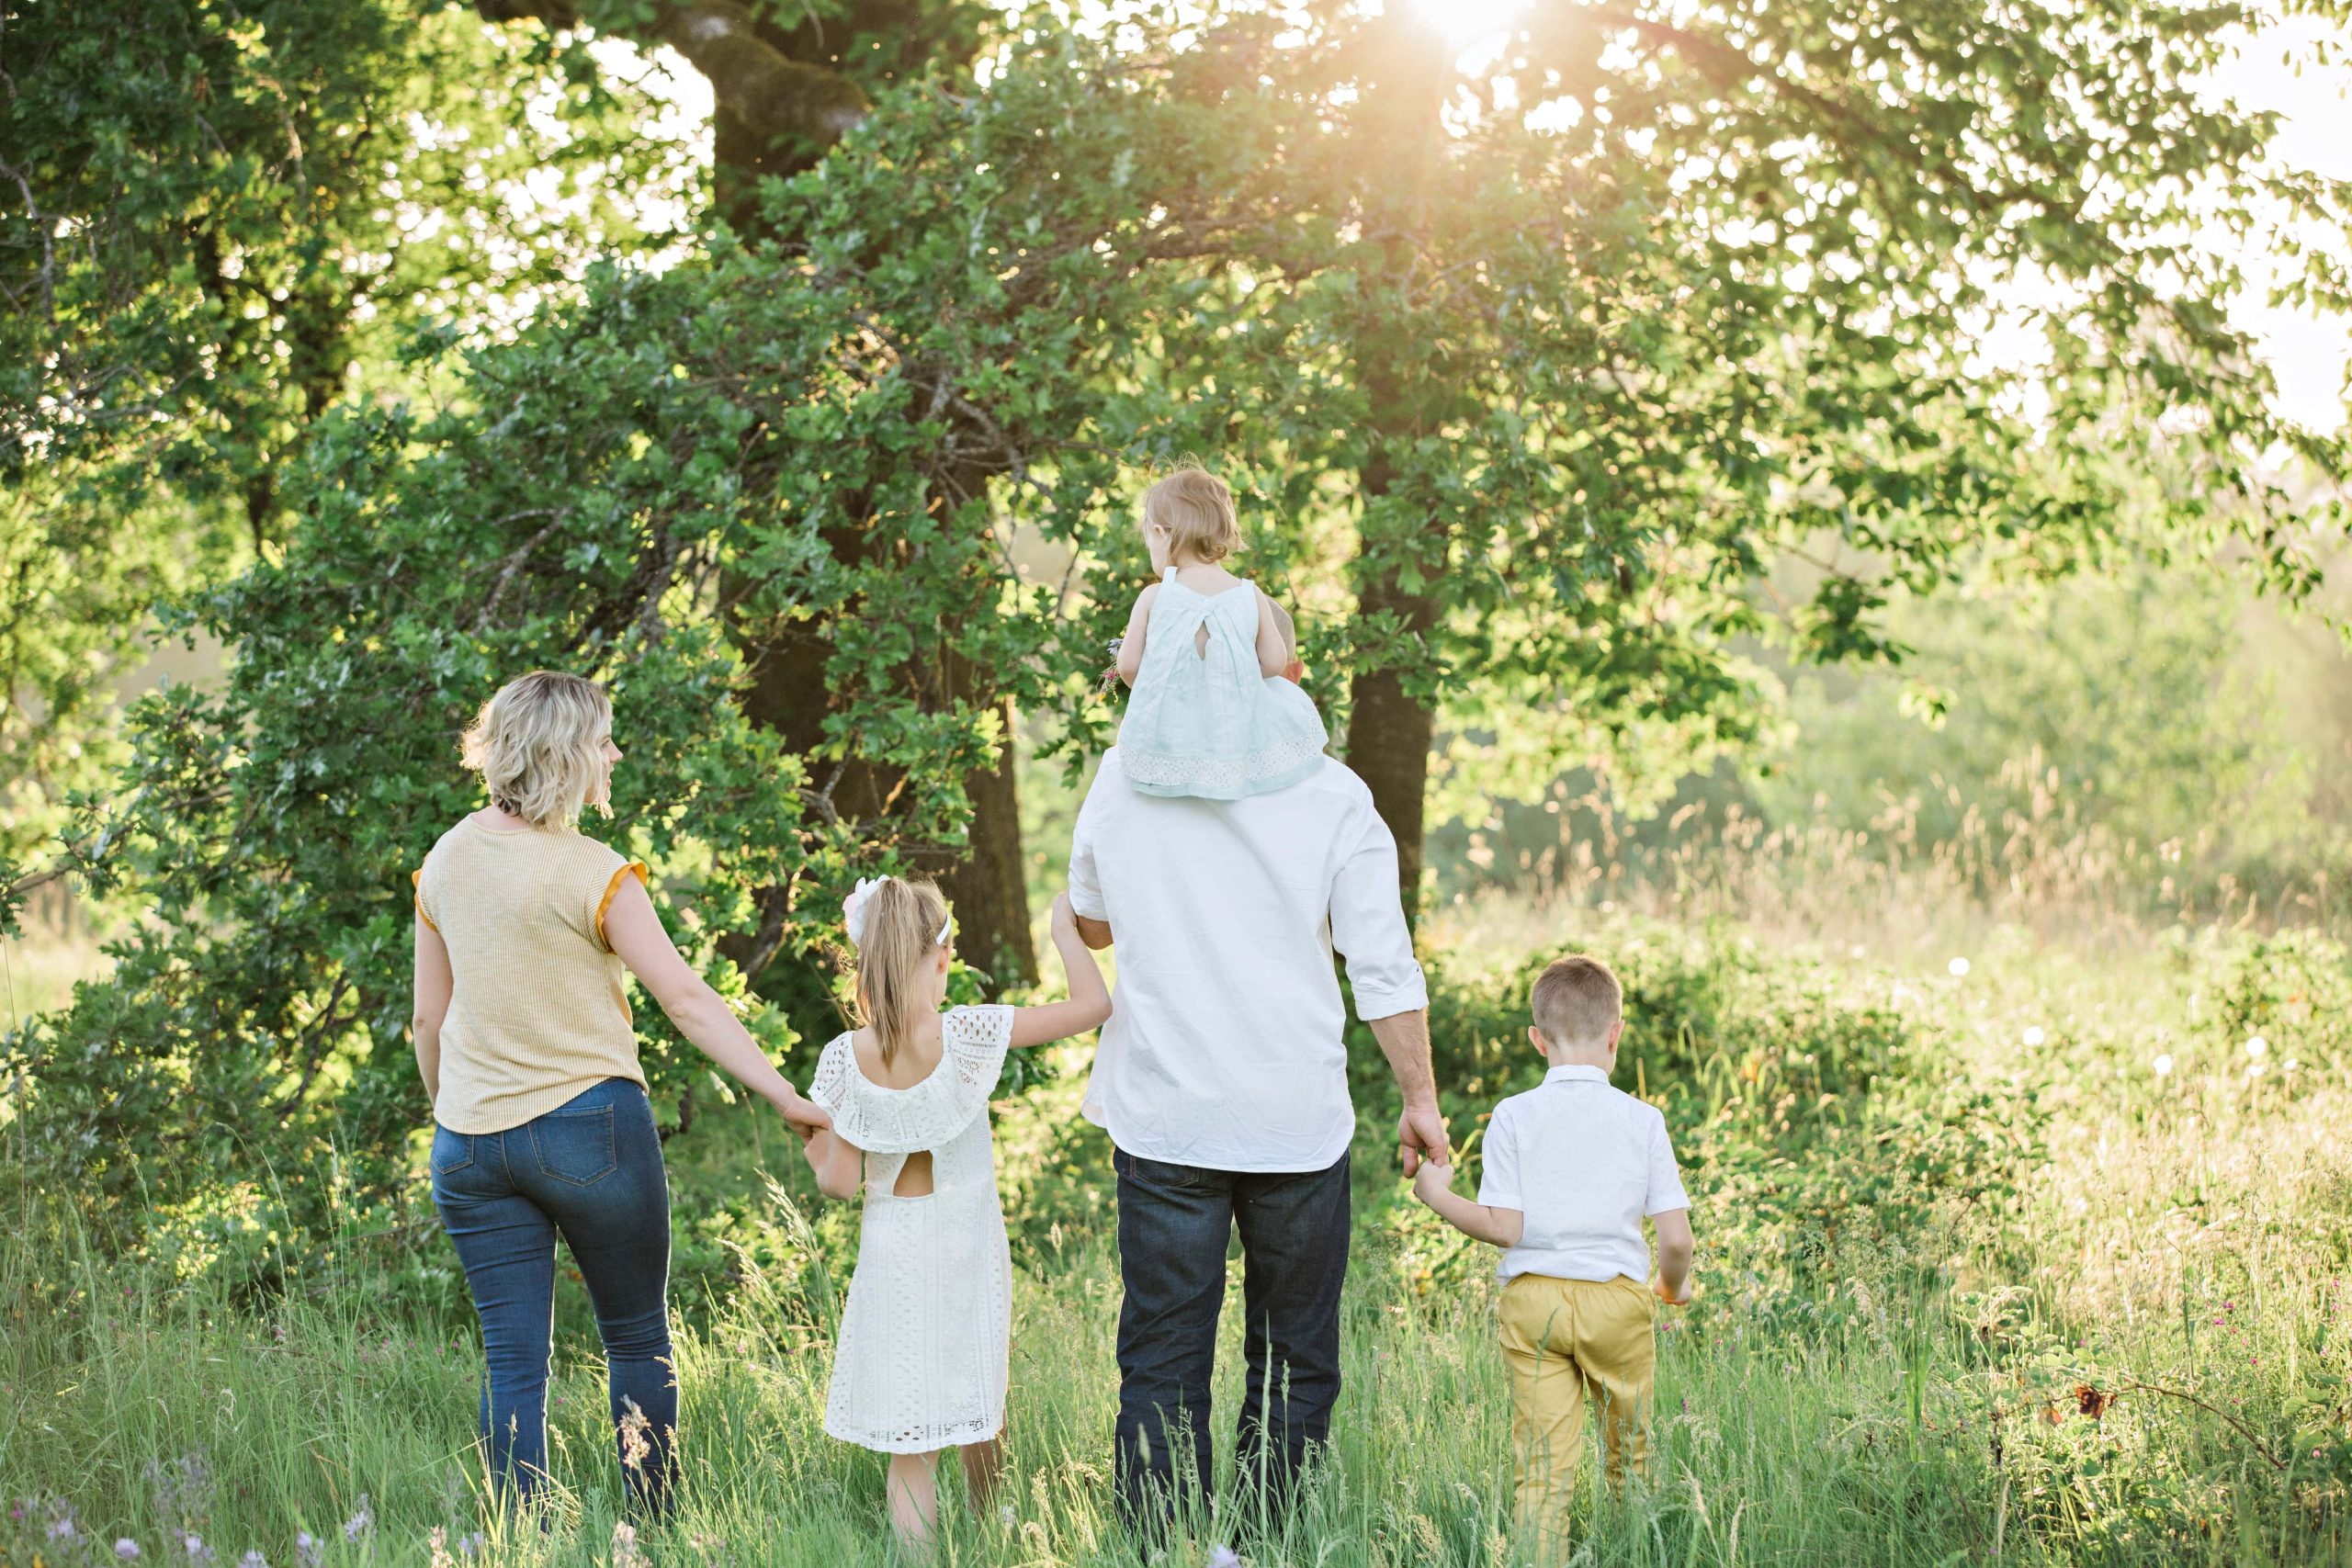 Image of a family of 5 walking in a sunny meadow.